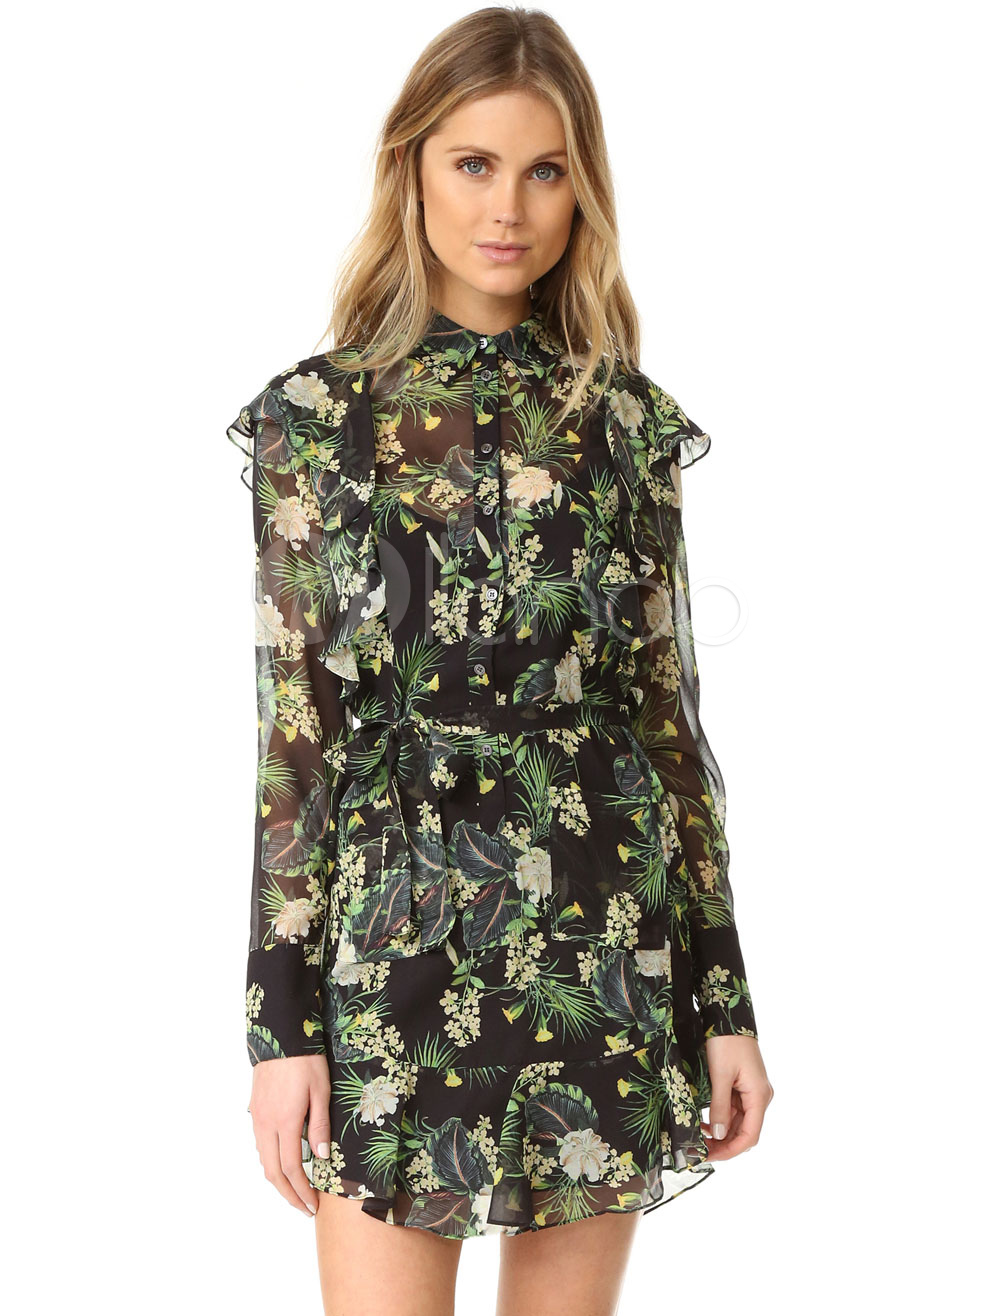 Buy Black Skater Dress Turndown Collar Long Sleeve Floral Printed Slim Fit Flare Dress for $24.99 in Milanoo store